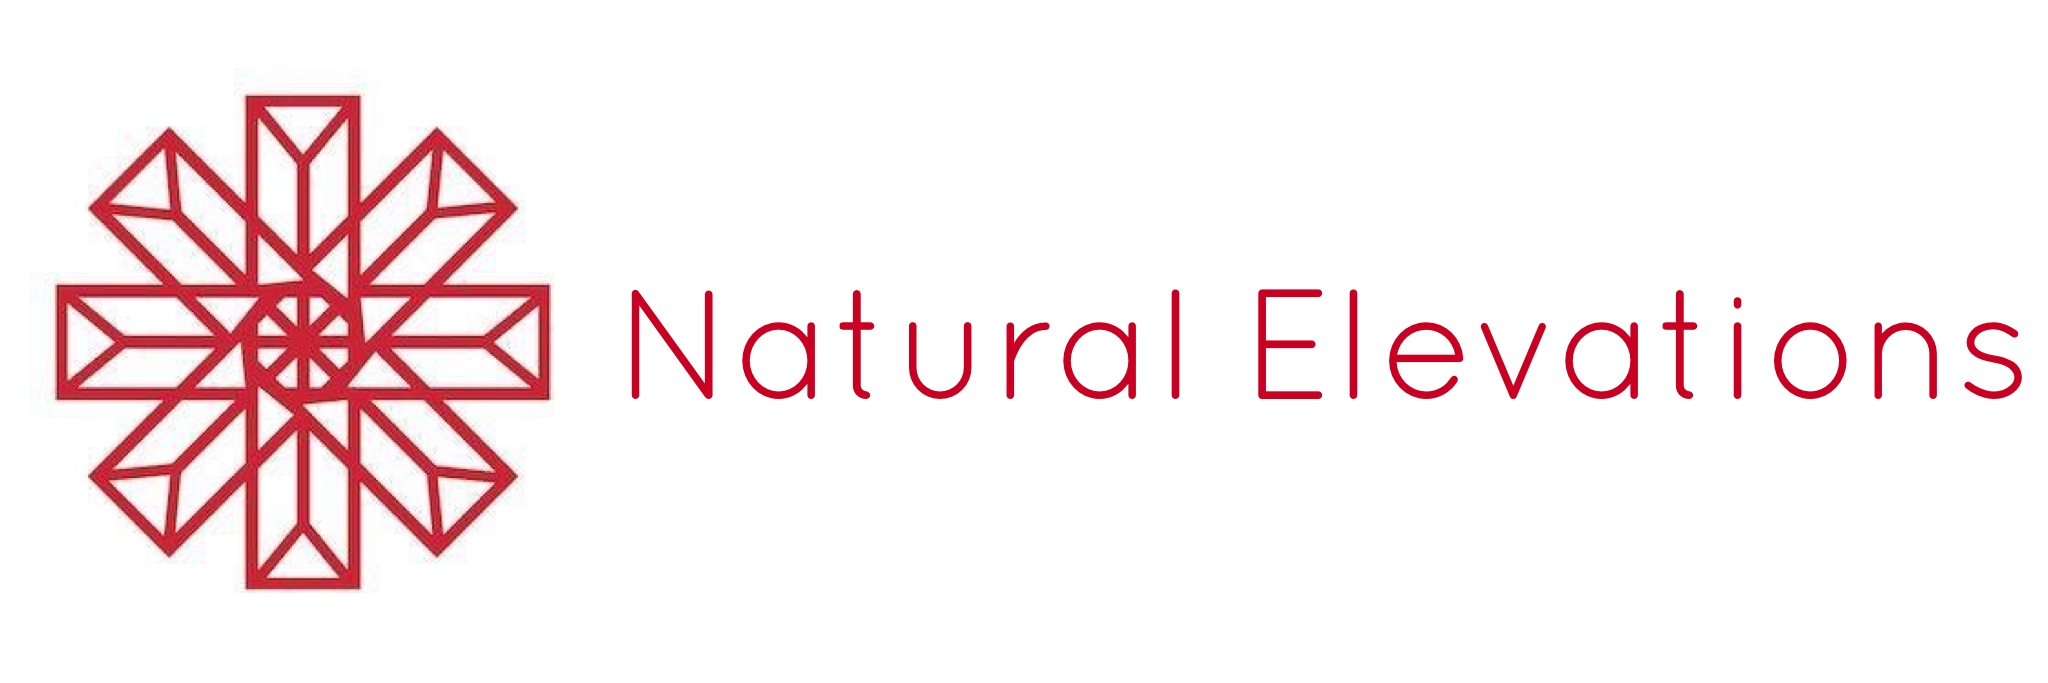 NATURAL ELEVATIONS INC